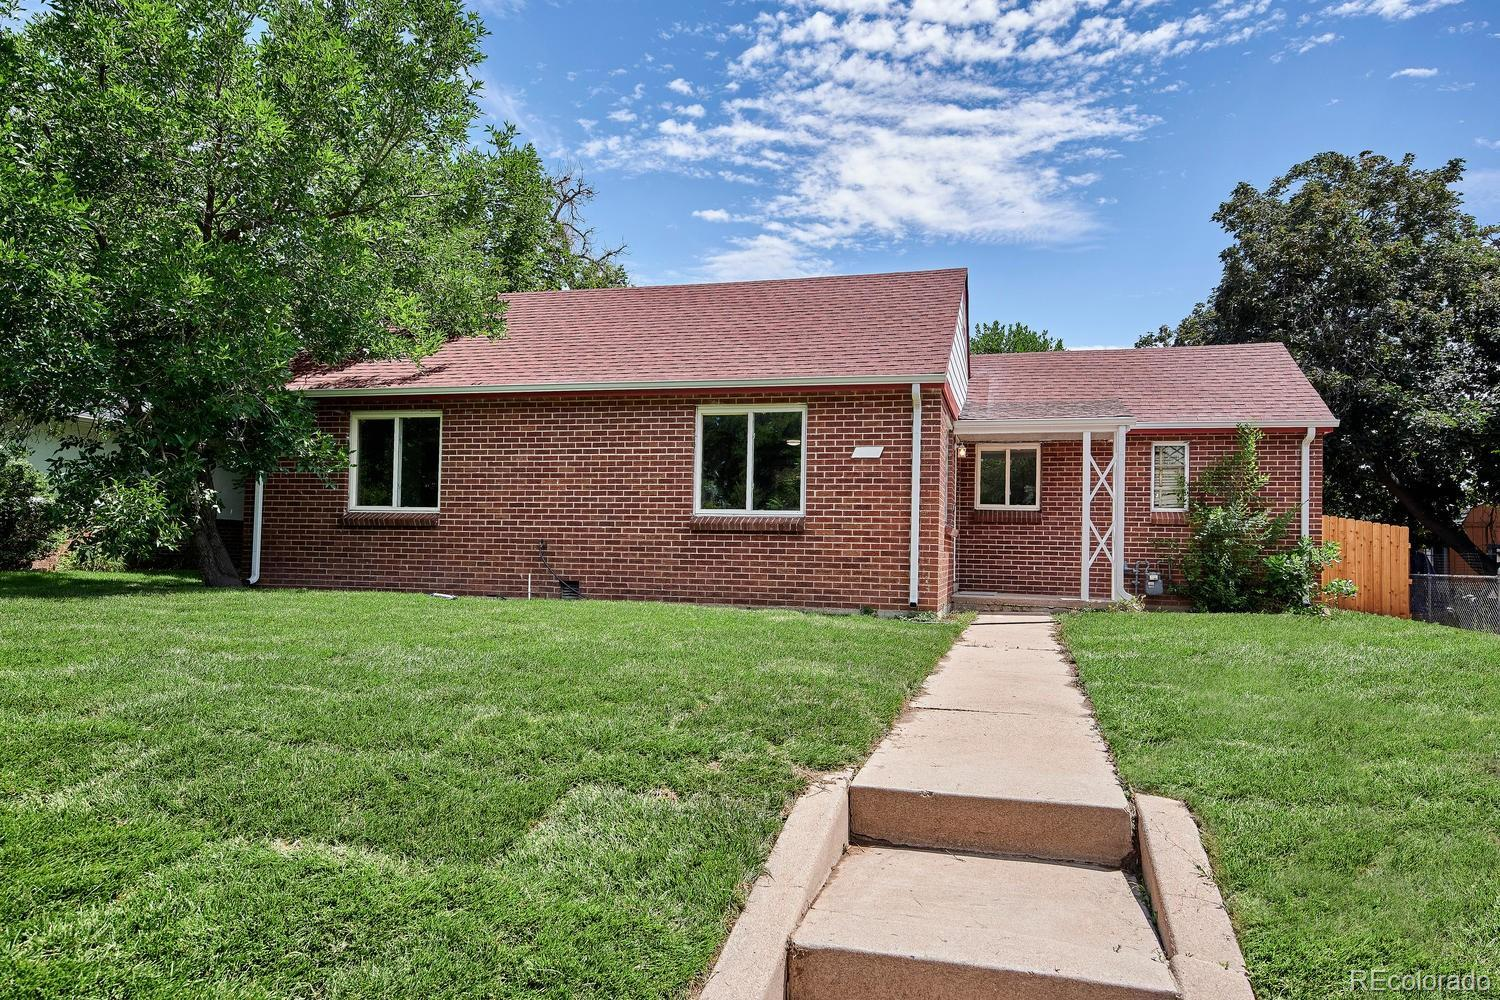 1220 Quebec Street, Denver, CO 80220 - #: 4556458